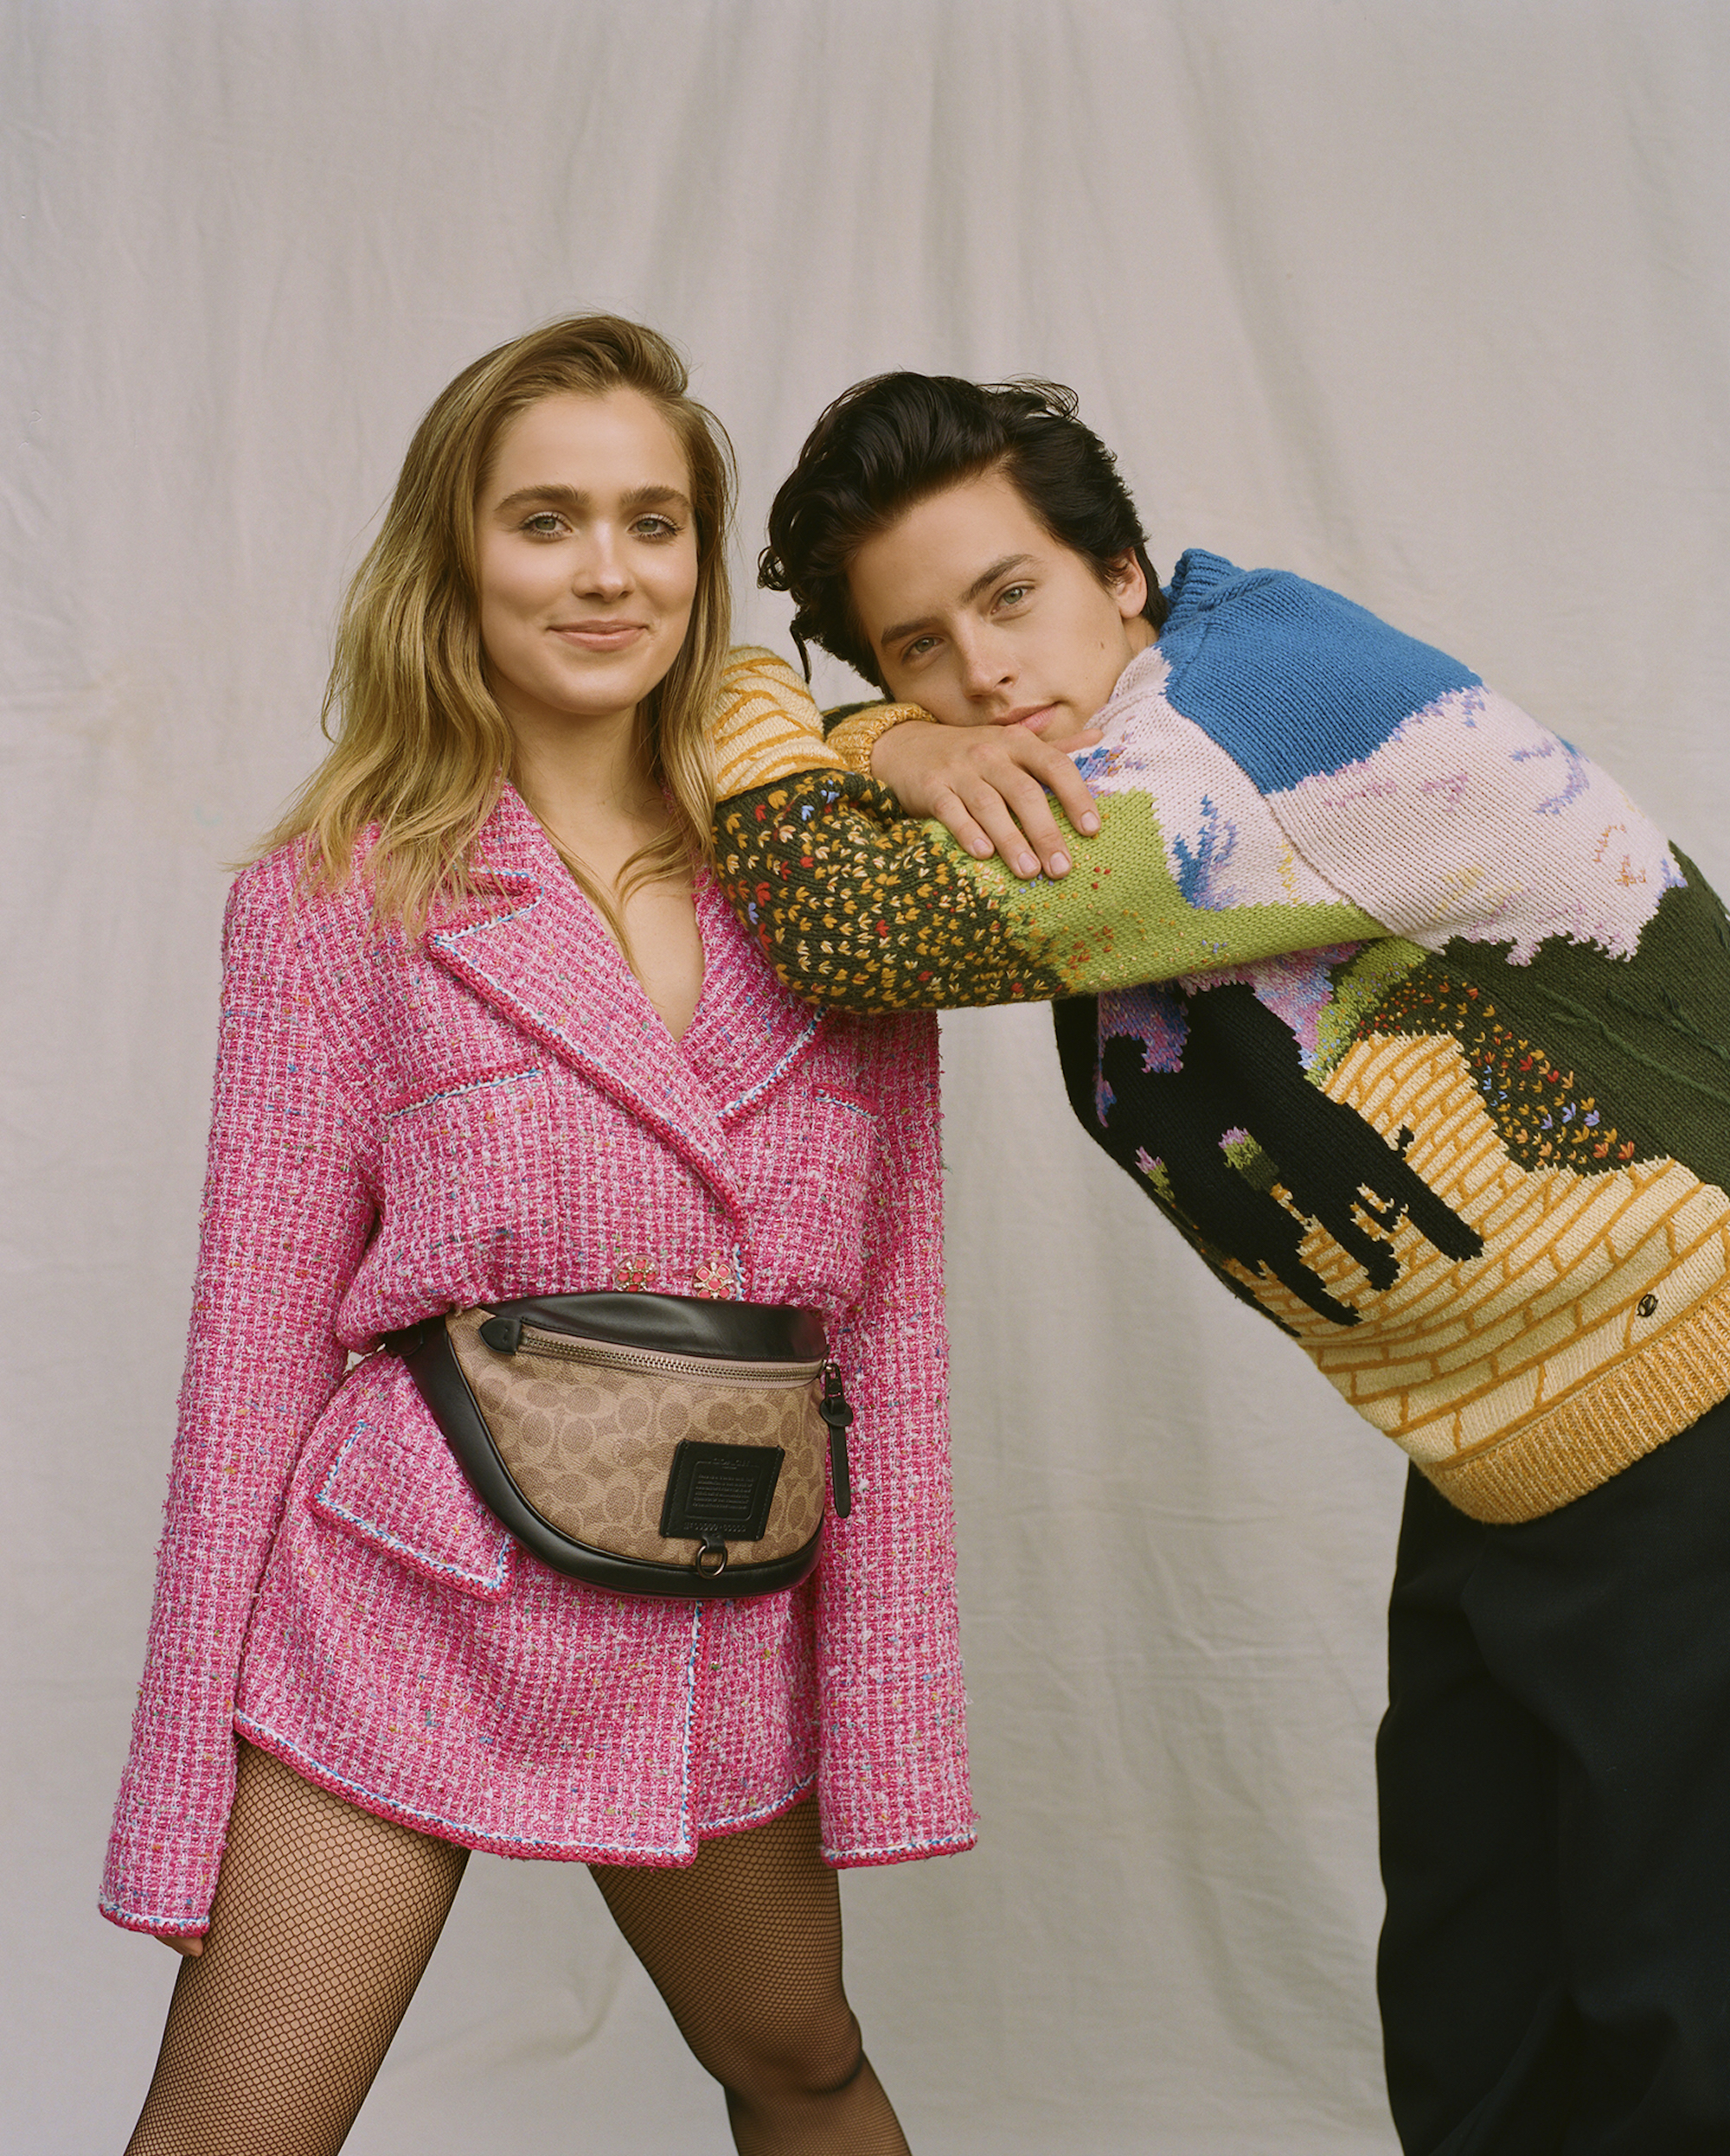 Cole Sprouse and Haley Lu Richardson on the Spring 19 cover of Wonderland in pink suit